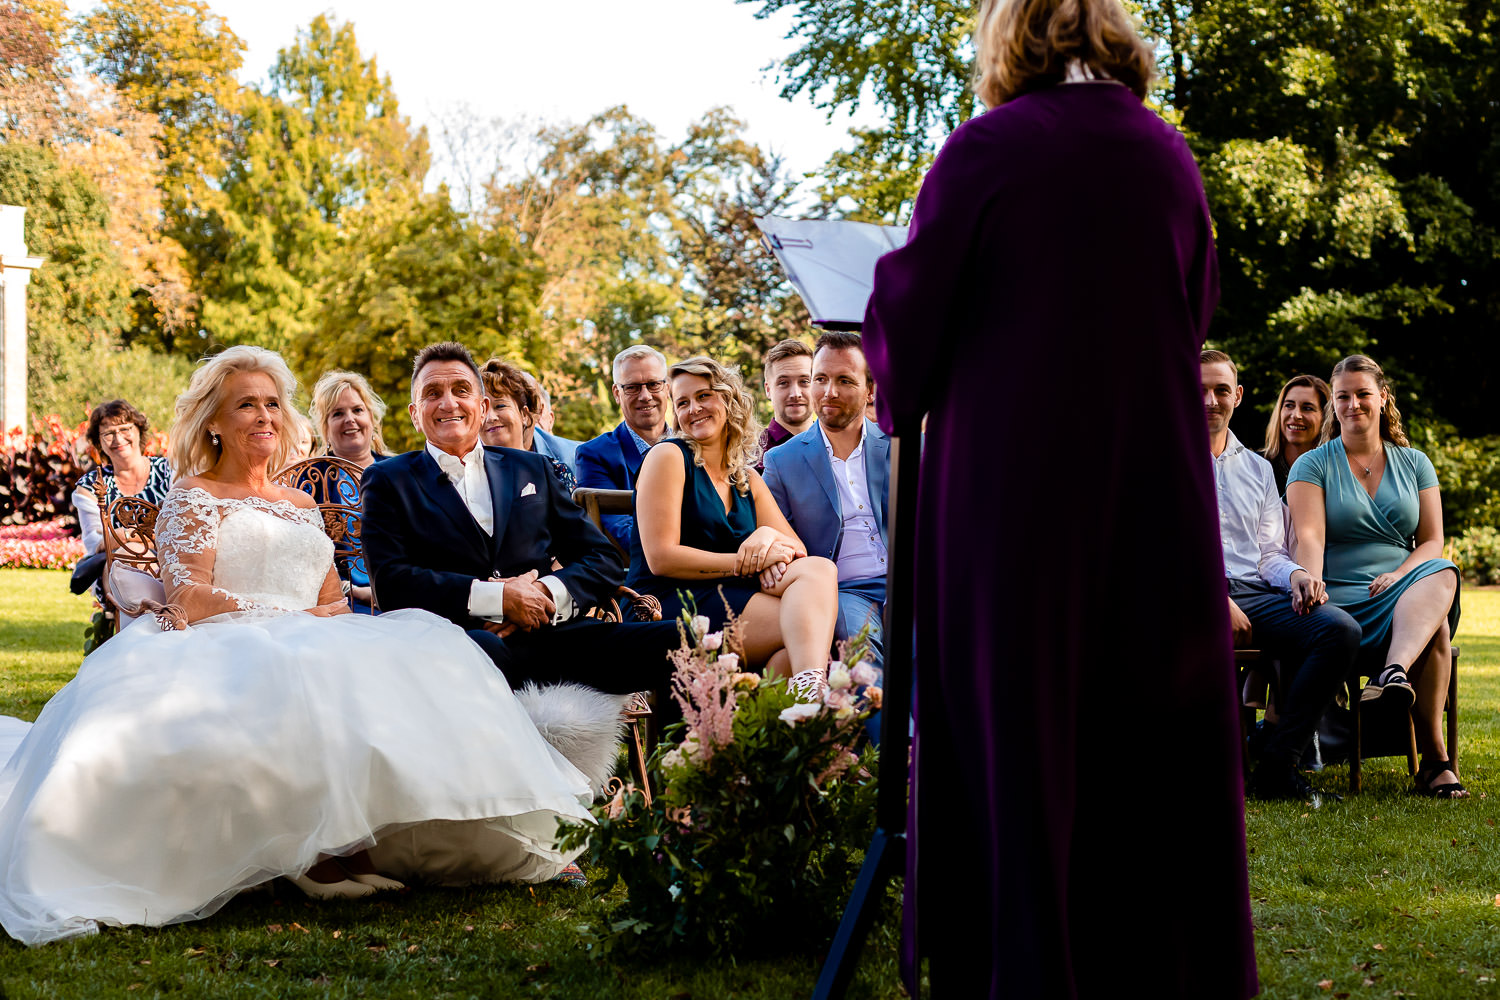 Huwelijksceremonie Married At First Sight van Sylvia & Freddy